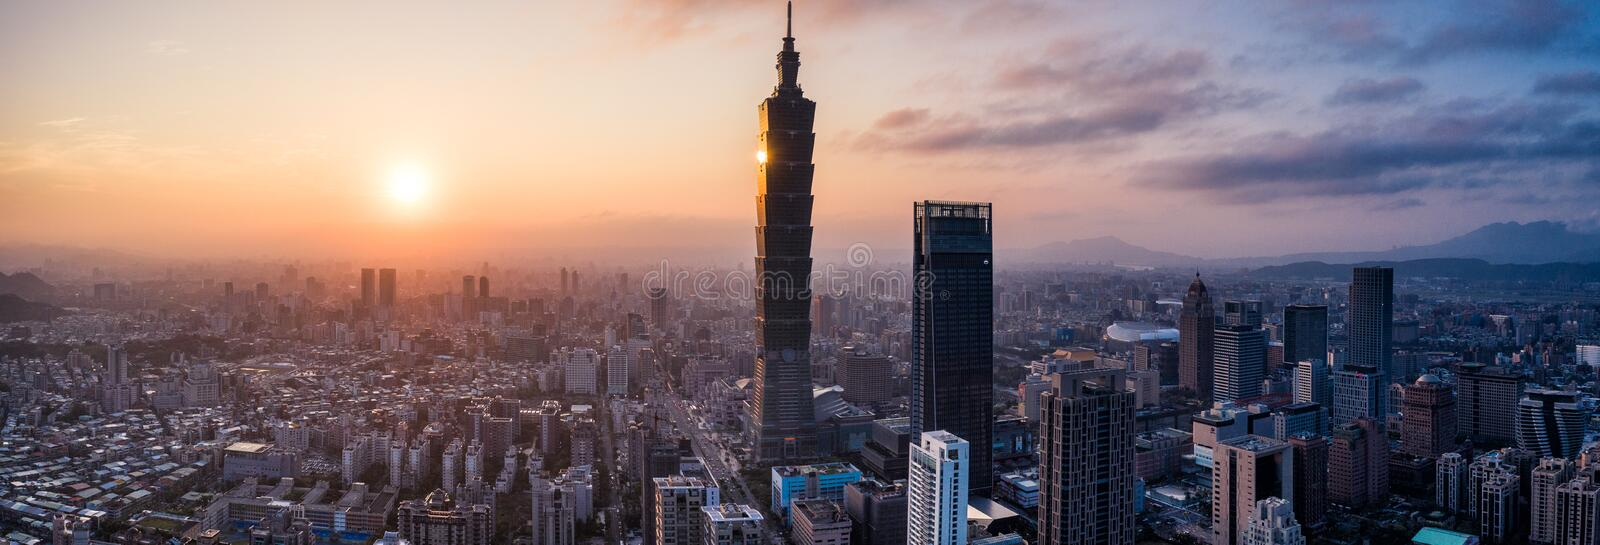 Aerial drone photo - Sunset over Taipei skyline. Taiwan. Taipei 101 skyscraper featured. stock images